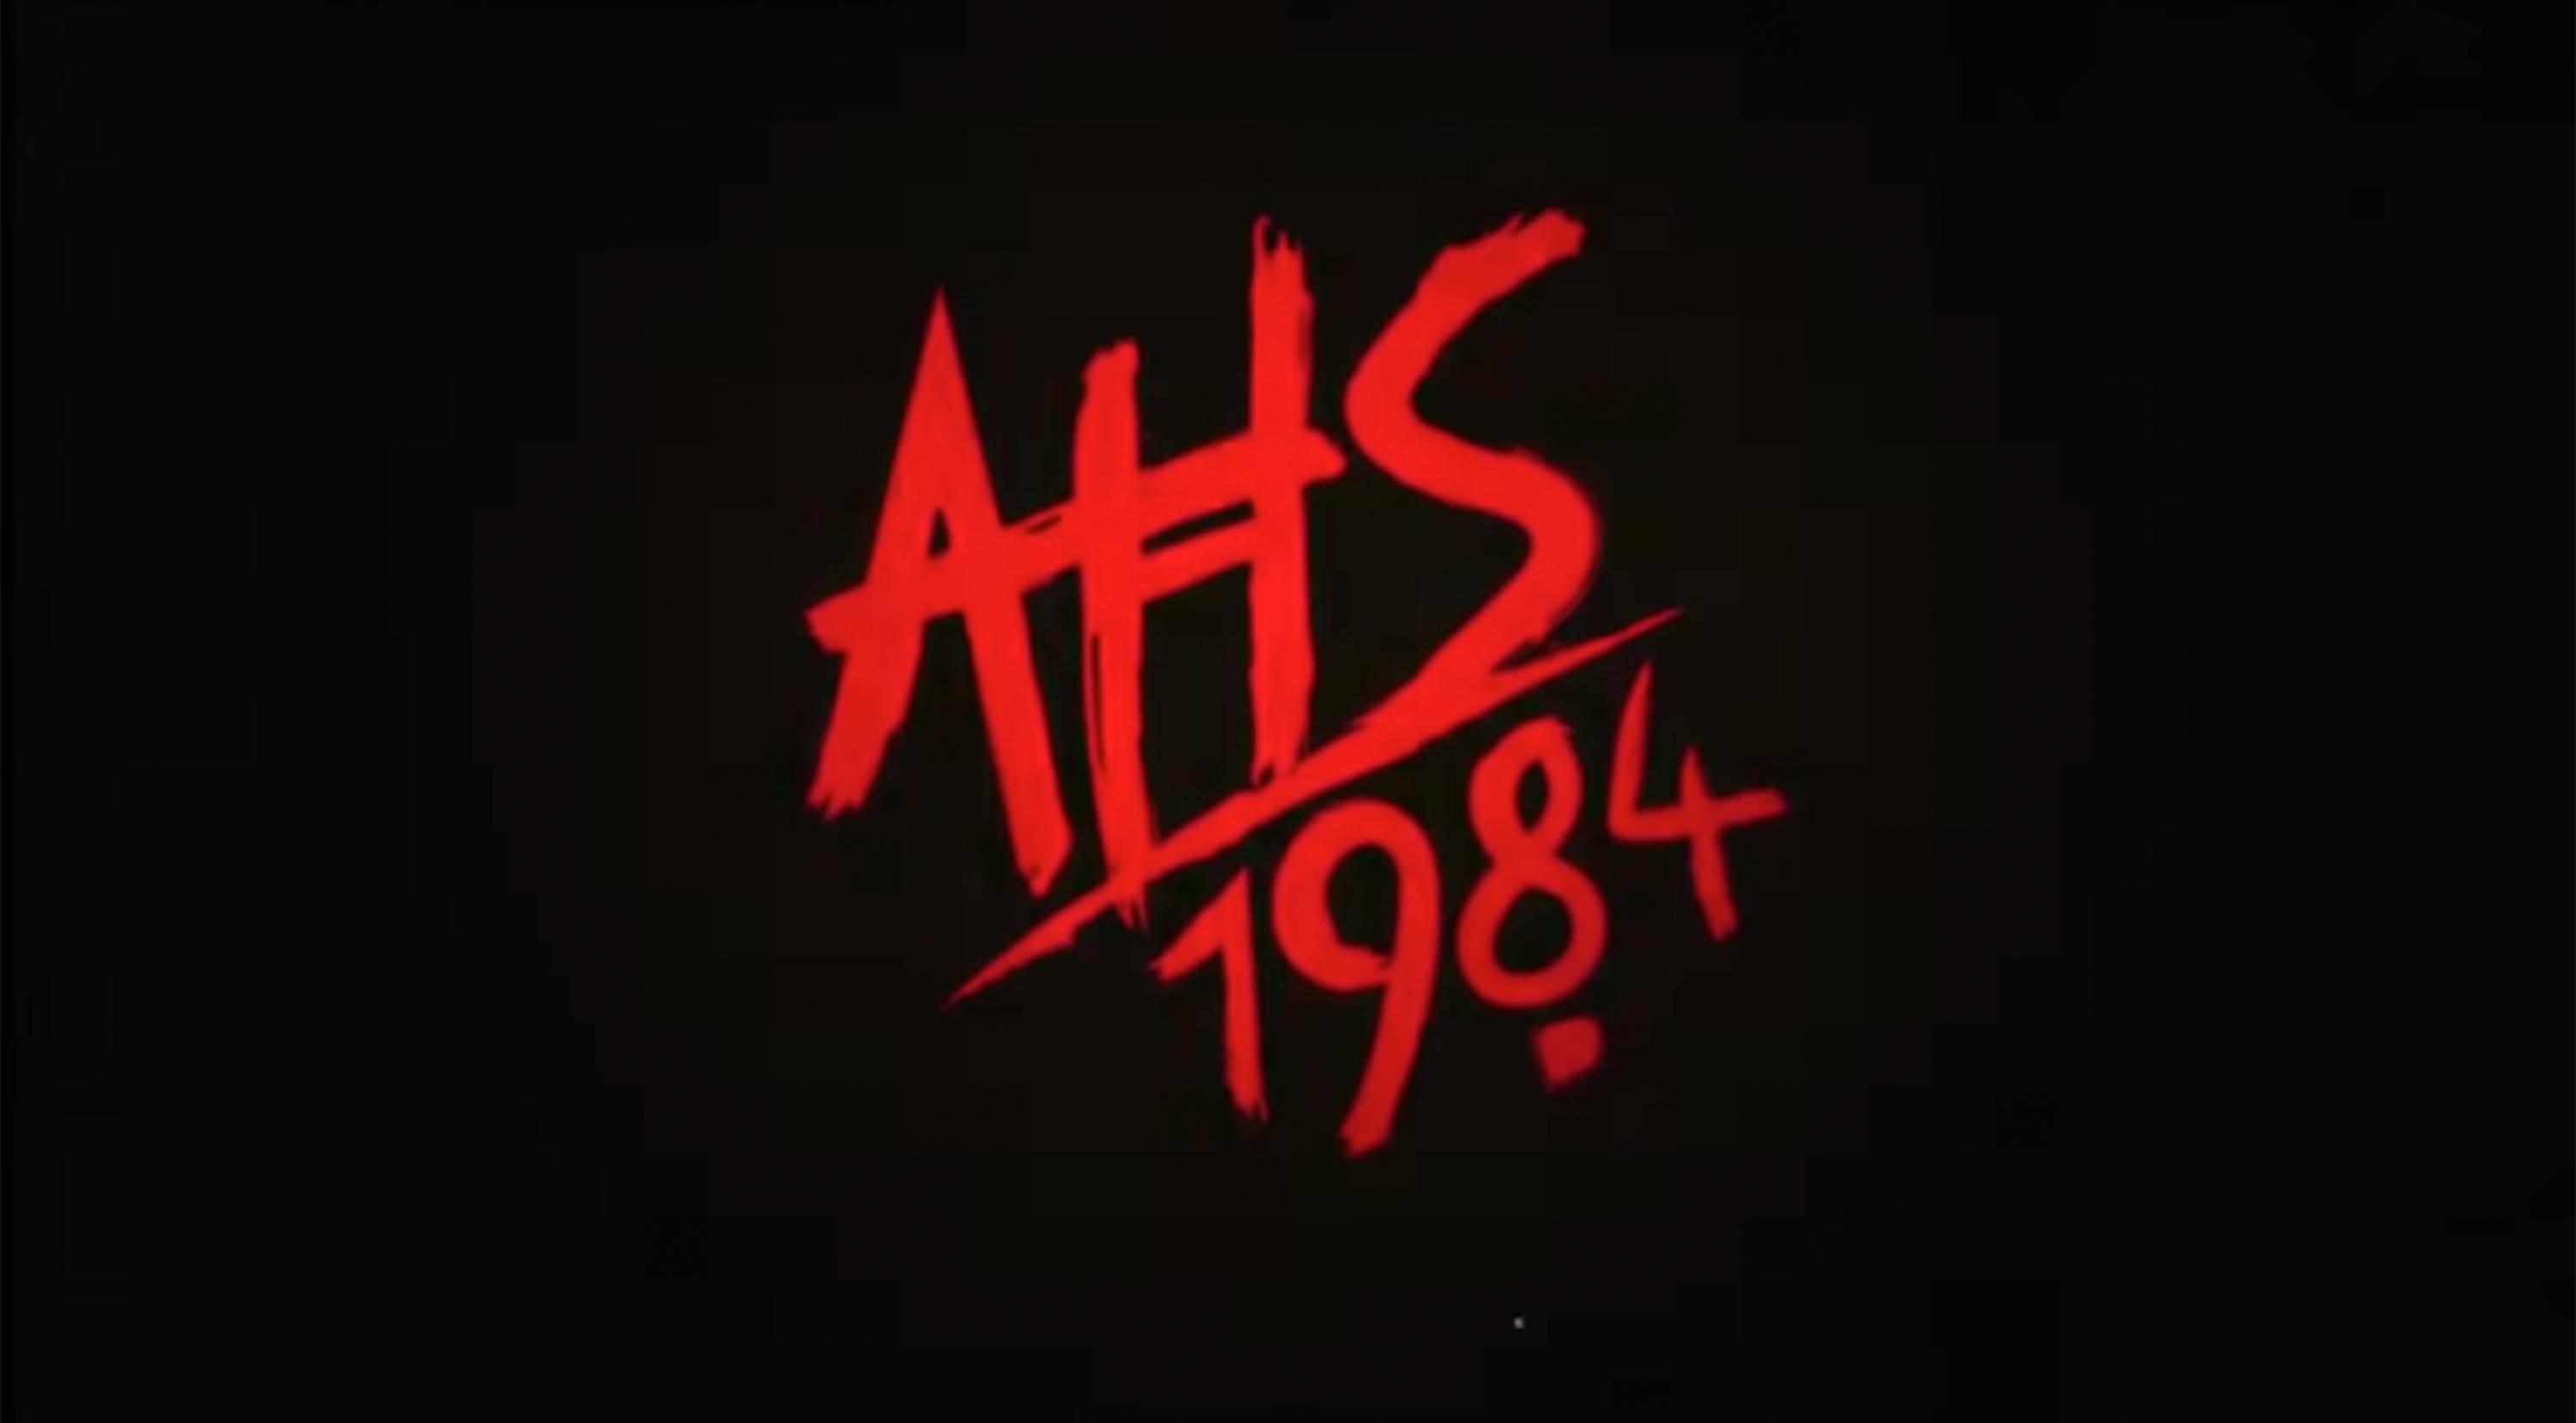 American Horror Story 1984: Everything we know so far